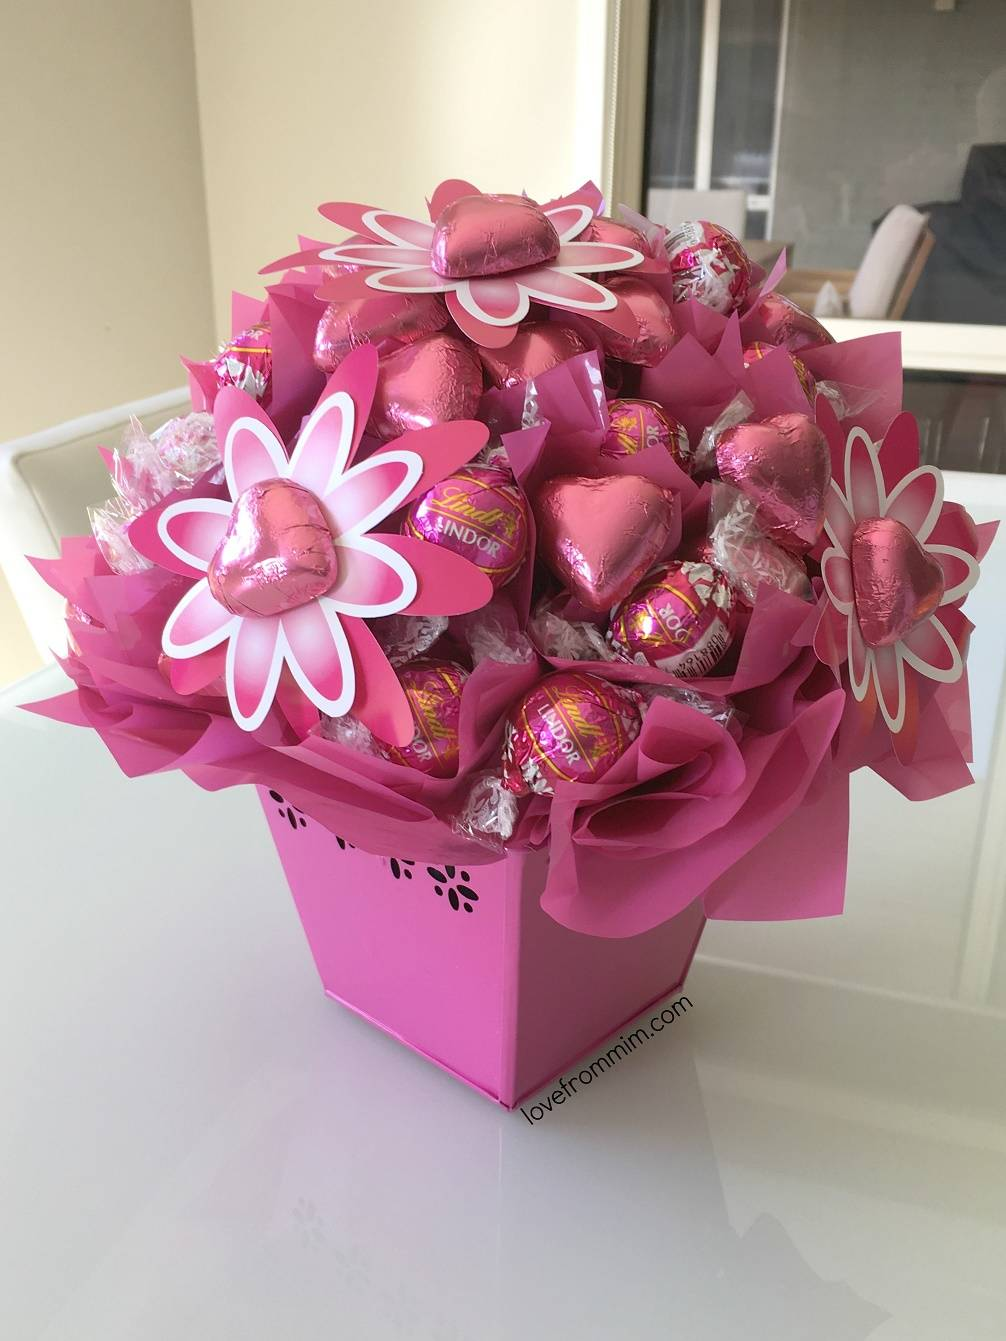 Tastebuds Edible Bouquets Review - lovefrommim.com Floral Gift Mother's Day National Breast Cancer Foundation Lindt Raspberry Lindt Balls Chocolate Bouquet